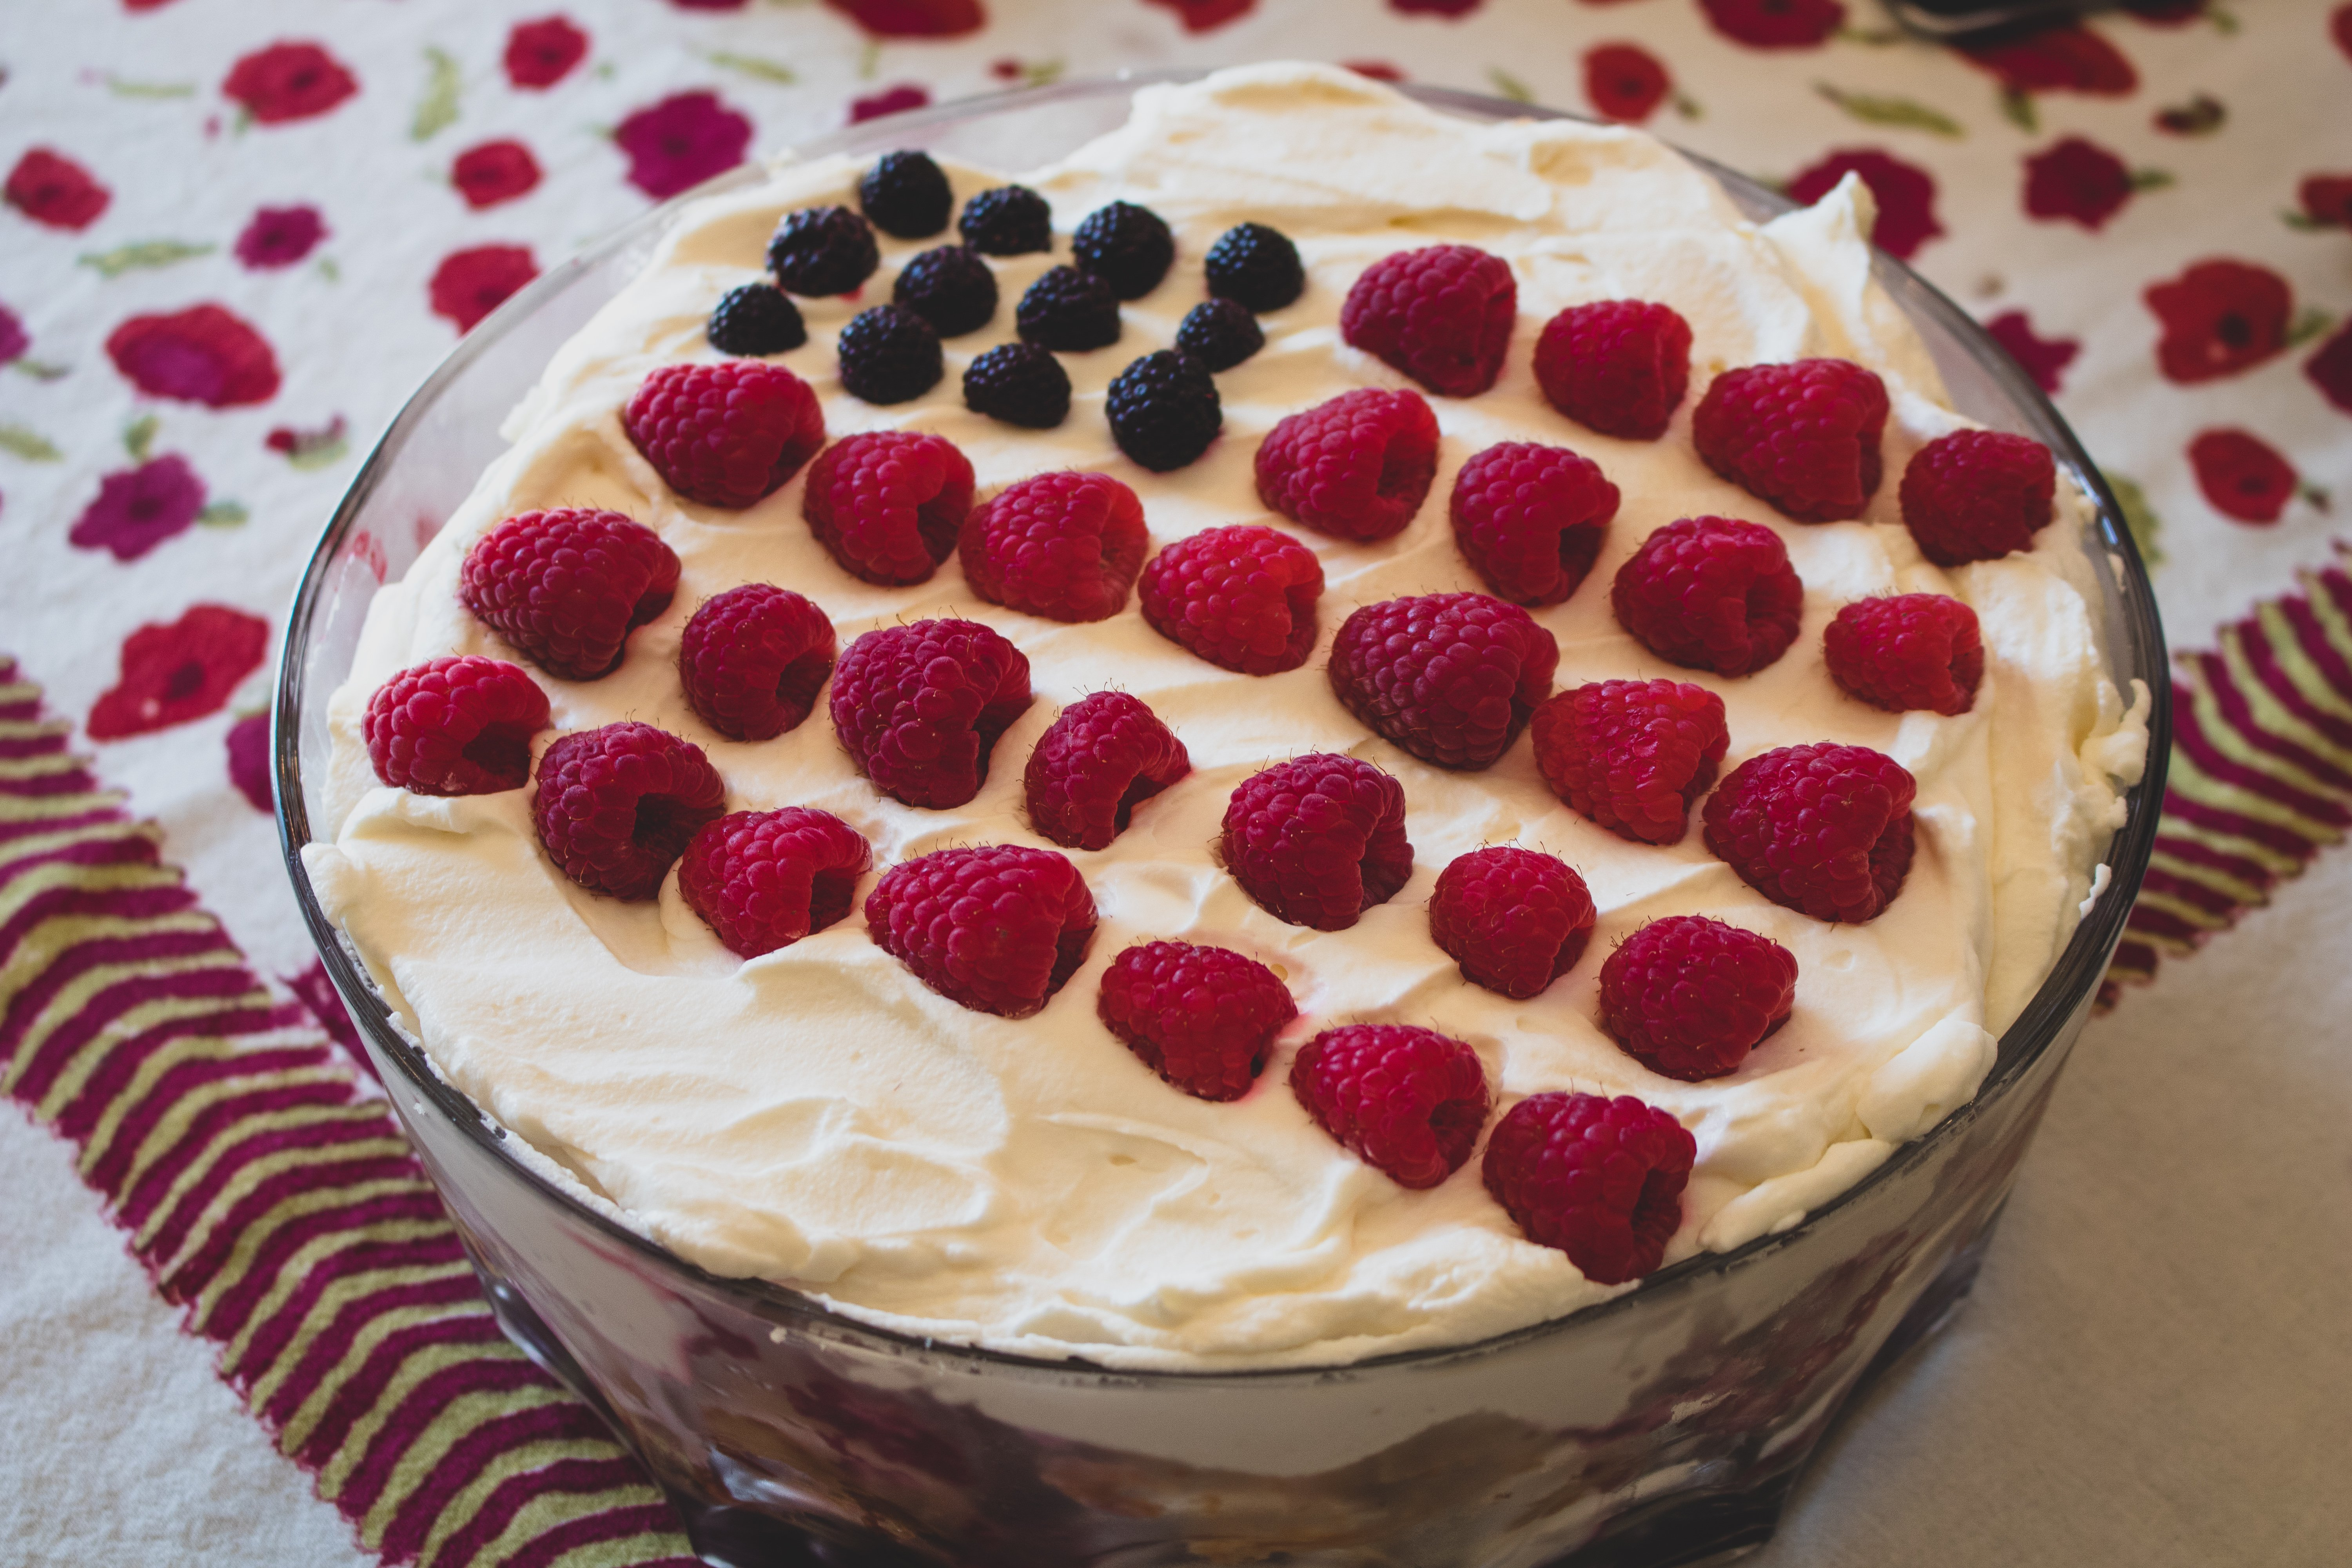 a trifle on a table topped with red raspberries and black raspberries arranged to resemble an American flag